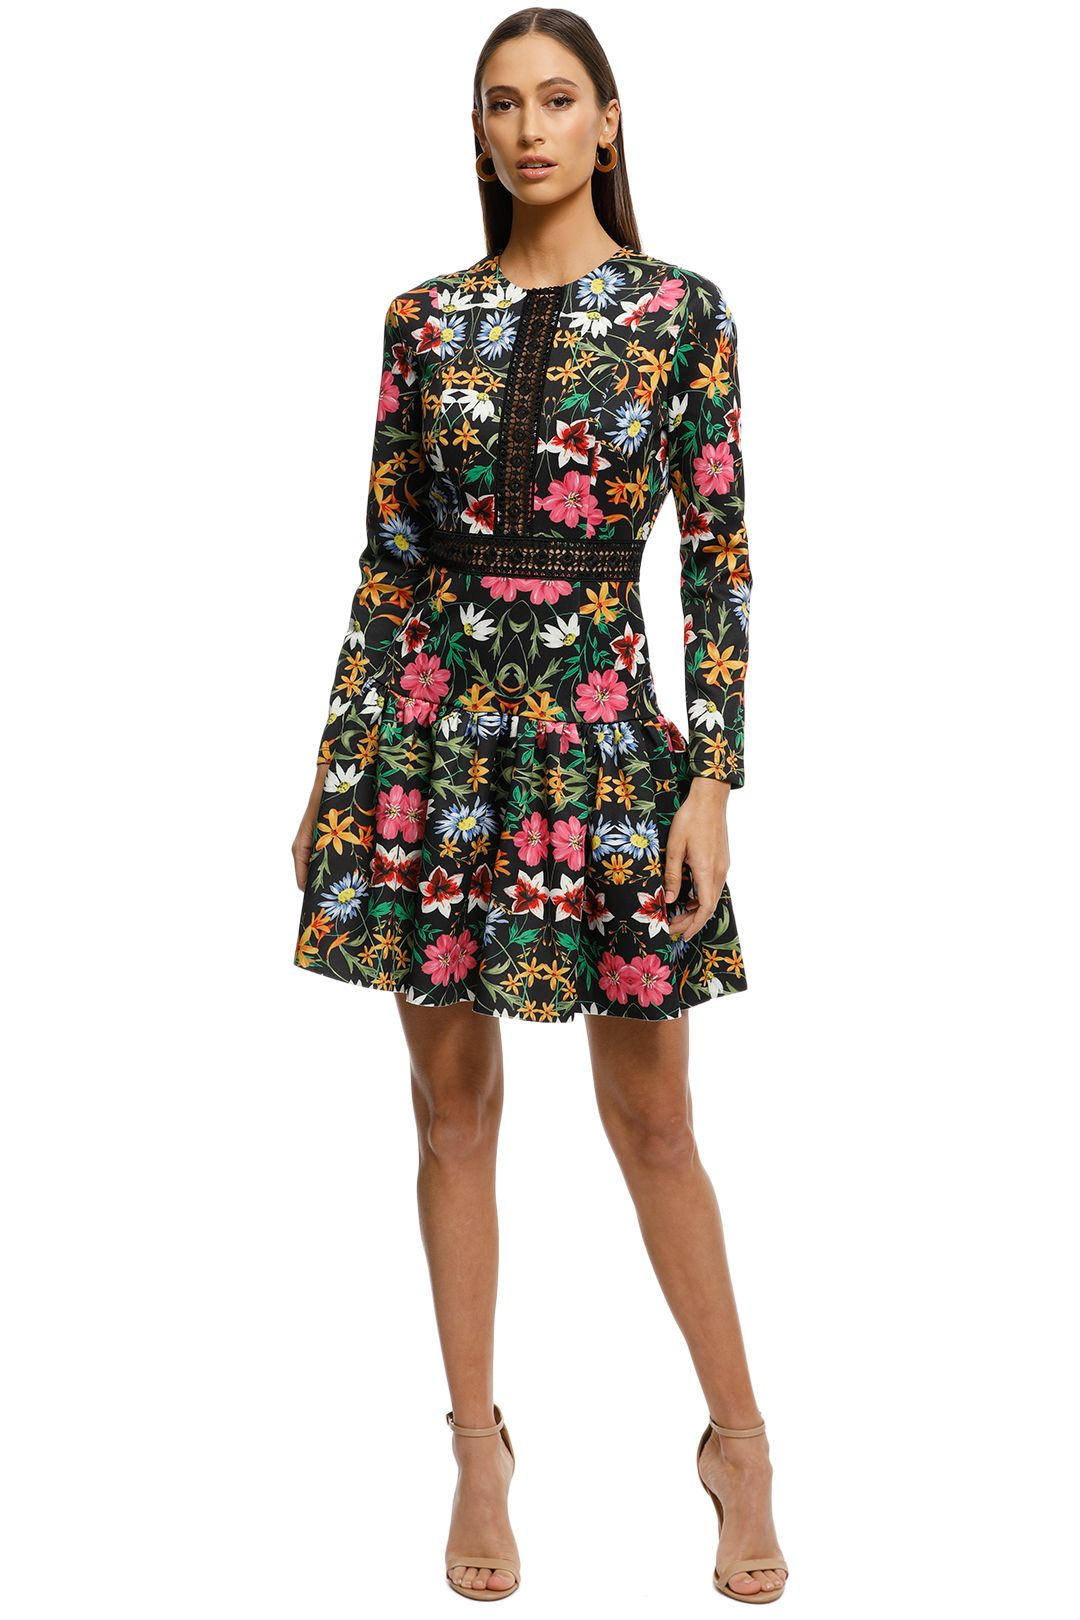 Alexia-Admor-Long-Sleeve-Lace-Knit-Trim-Floral-Print-Dress-Black-Multi-Front